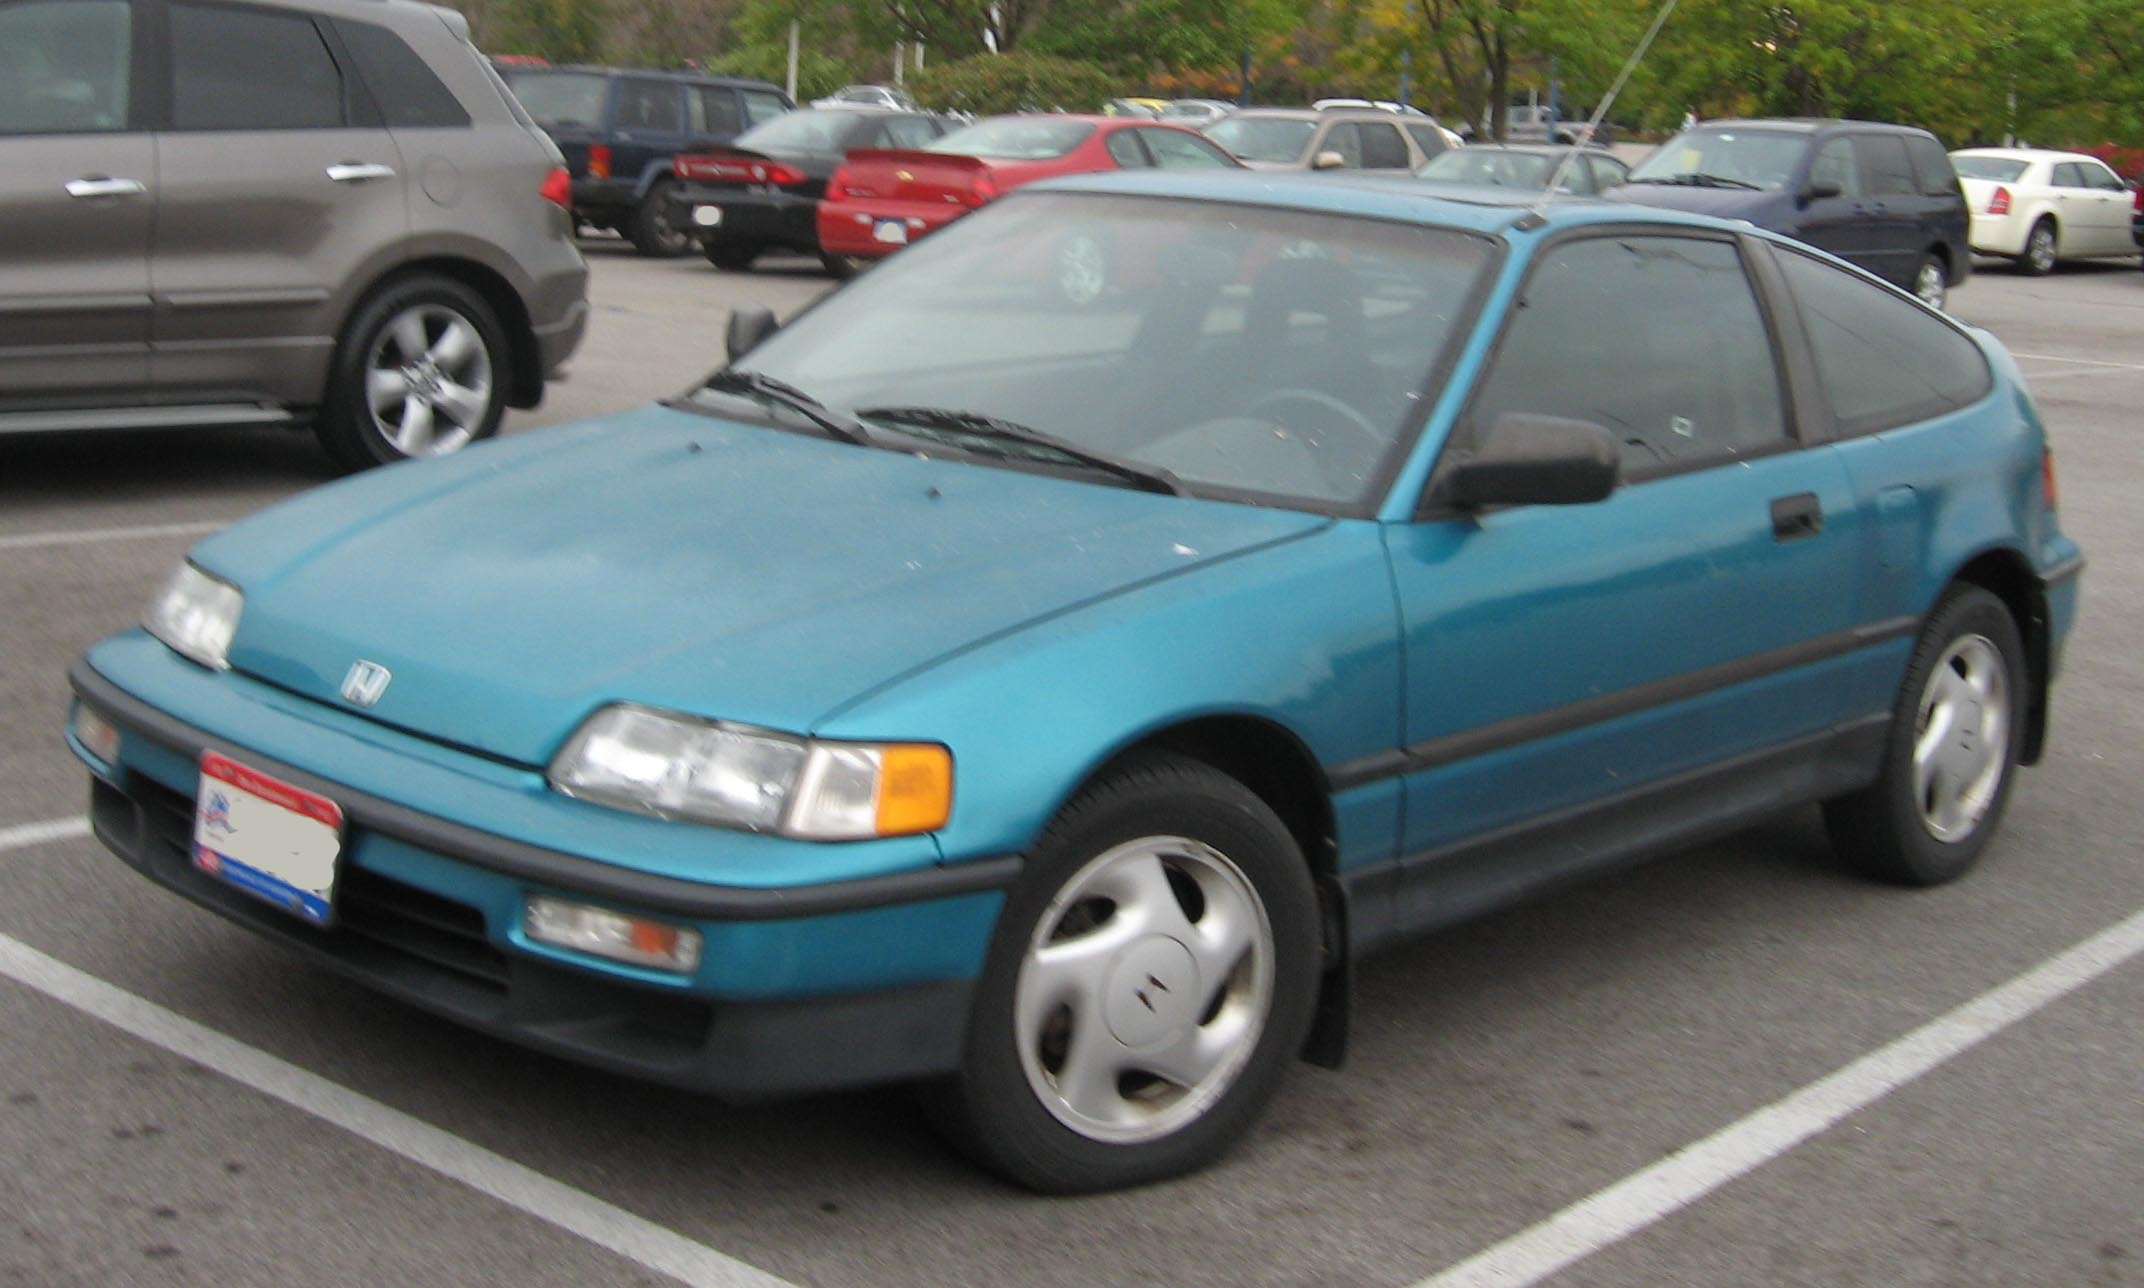 Jdm Cars For Sale >> File:Honda-CRX.jpg - Wikimedia Commons